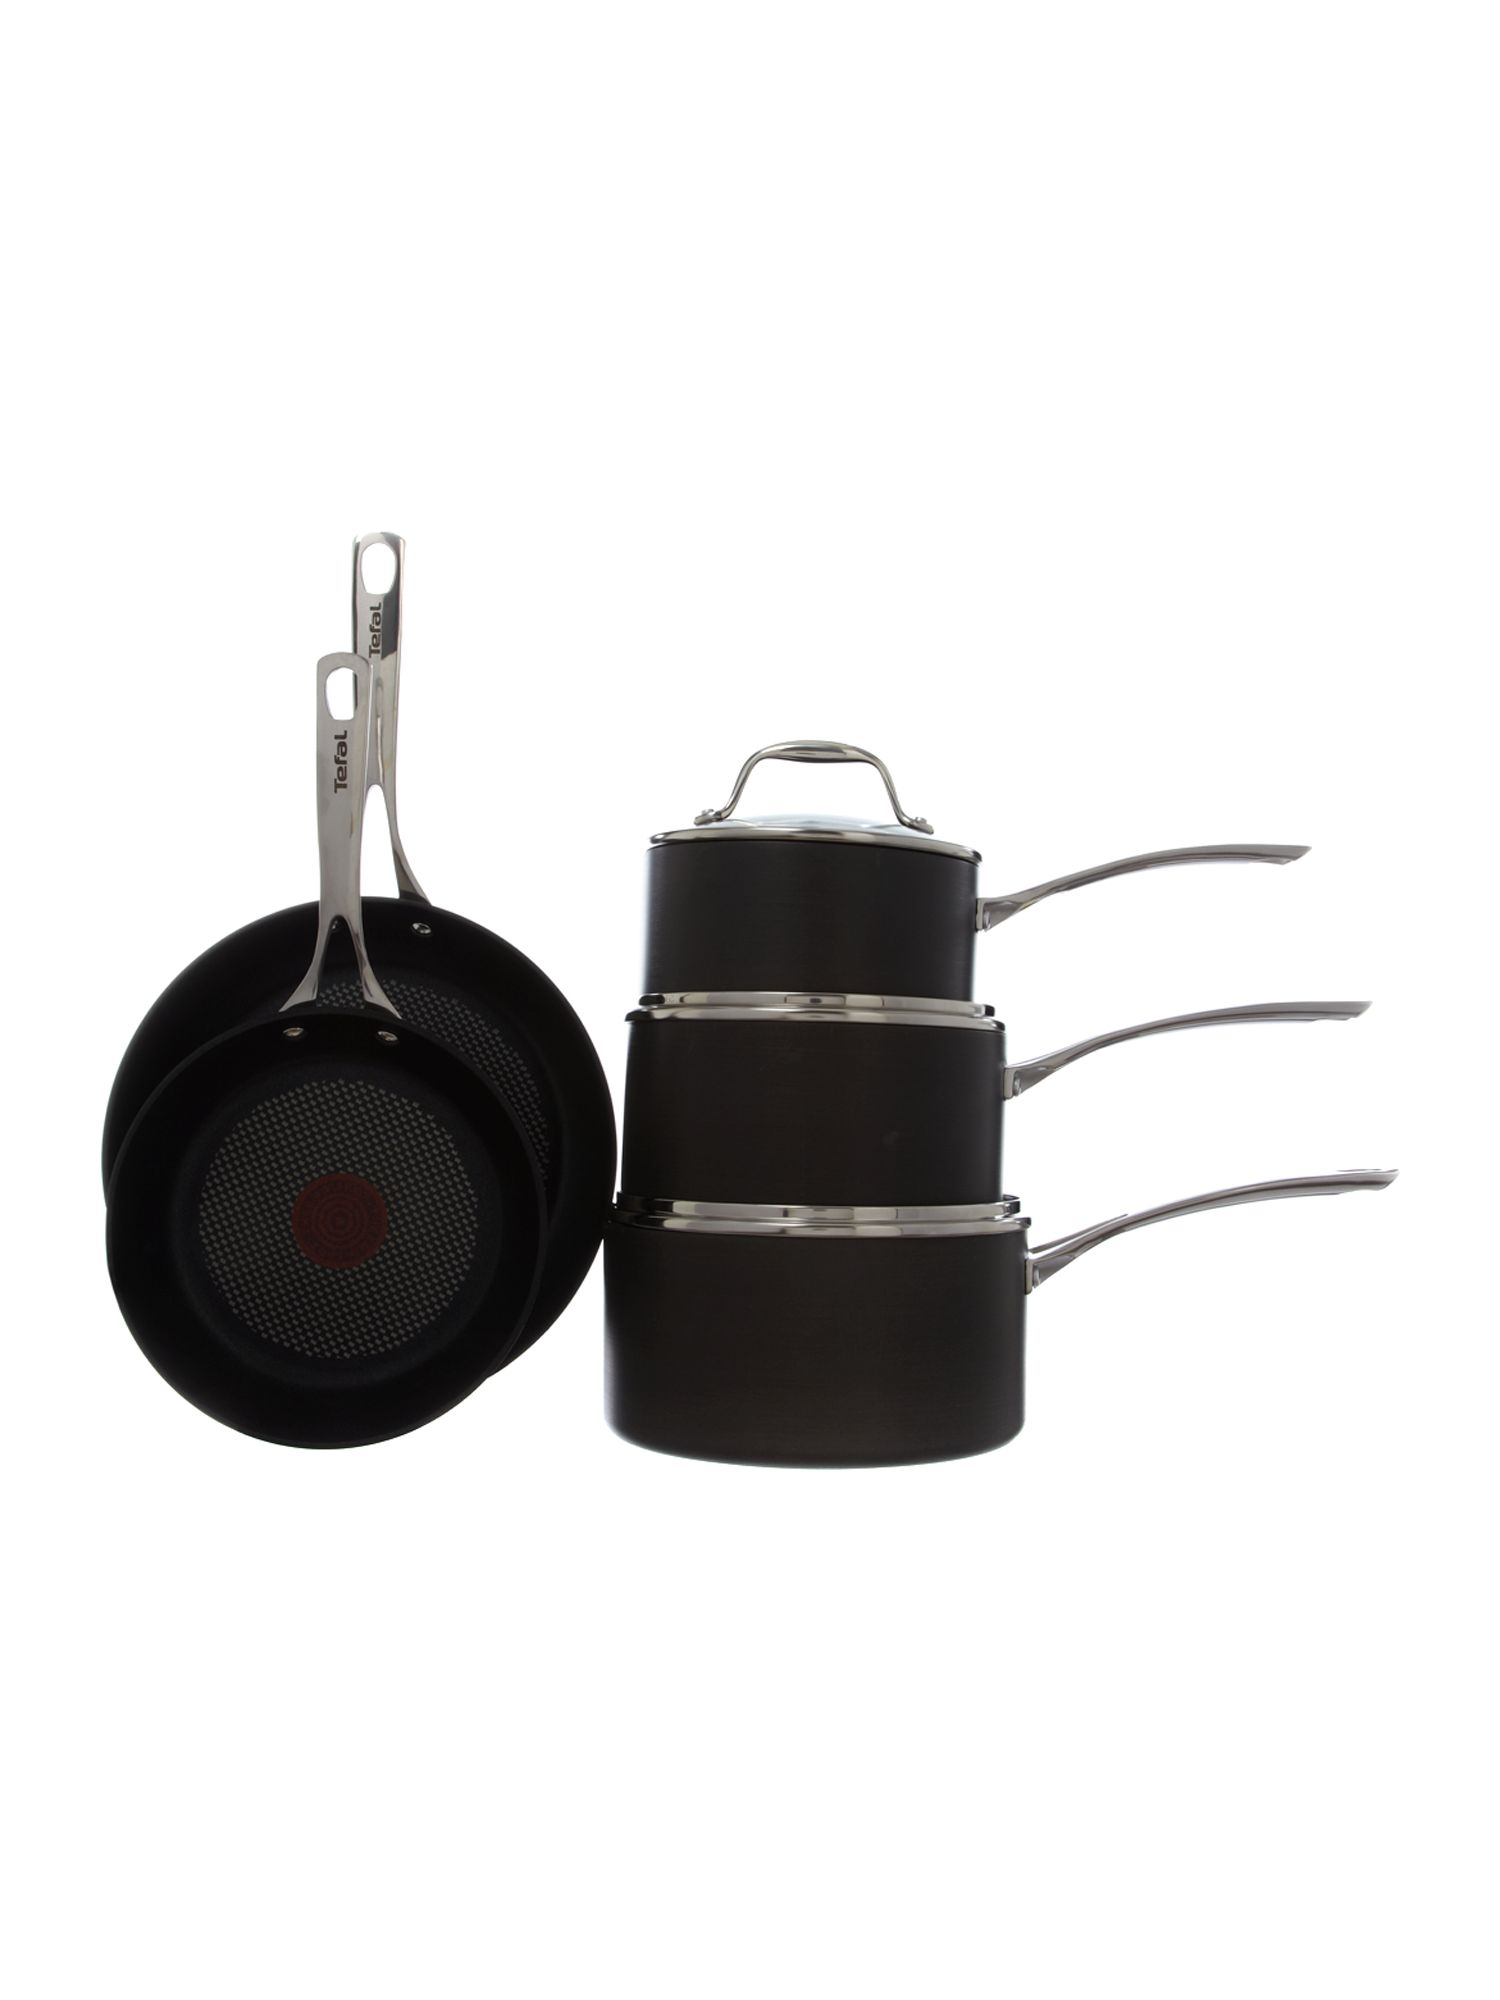 Gourmet anodised 5pc pan set